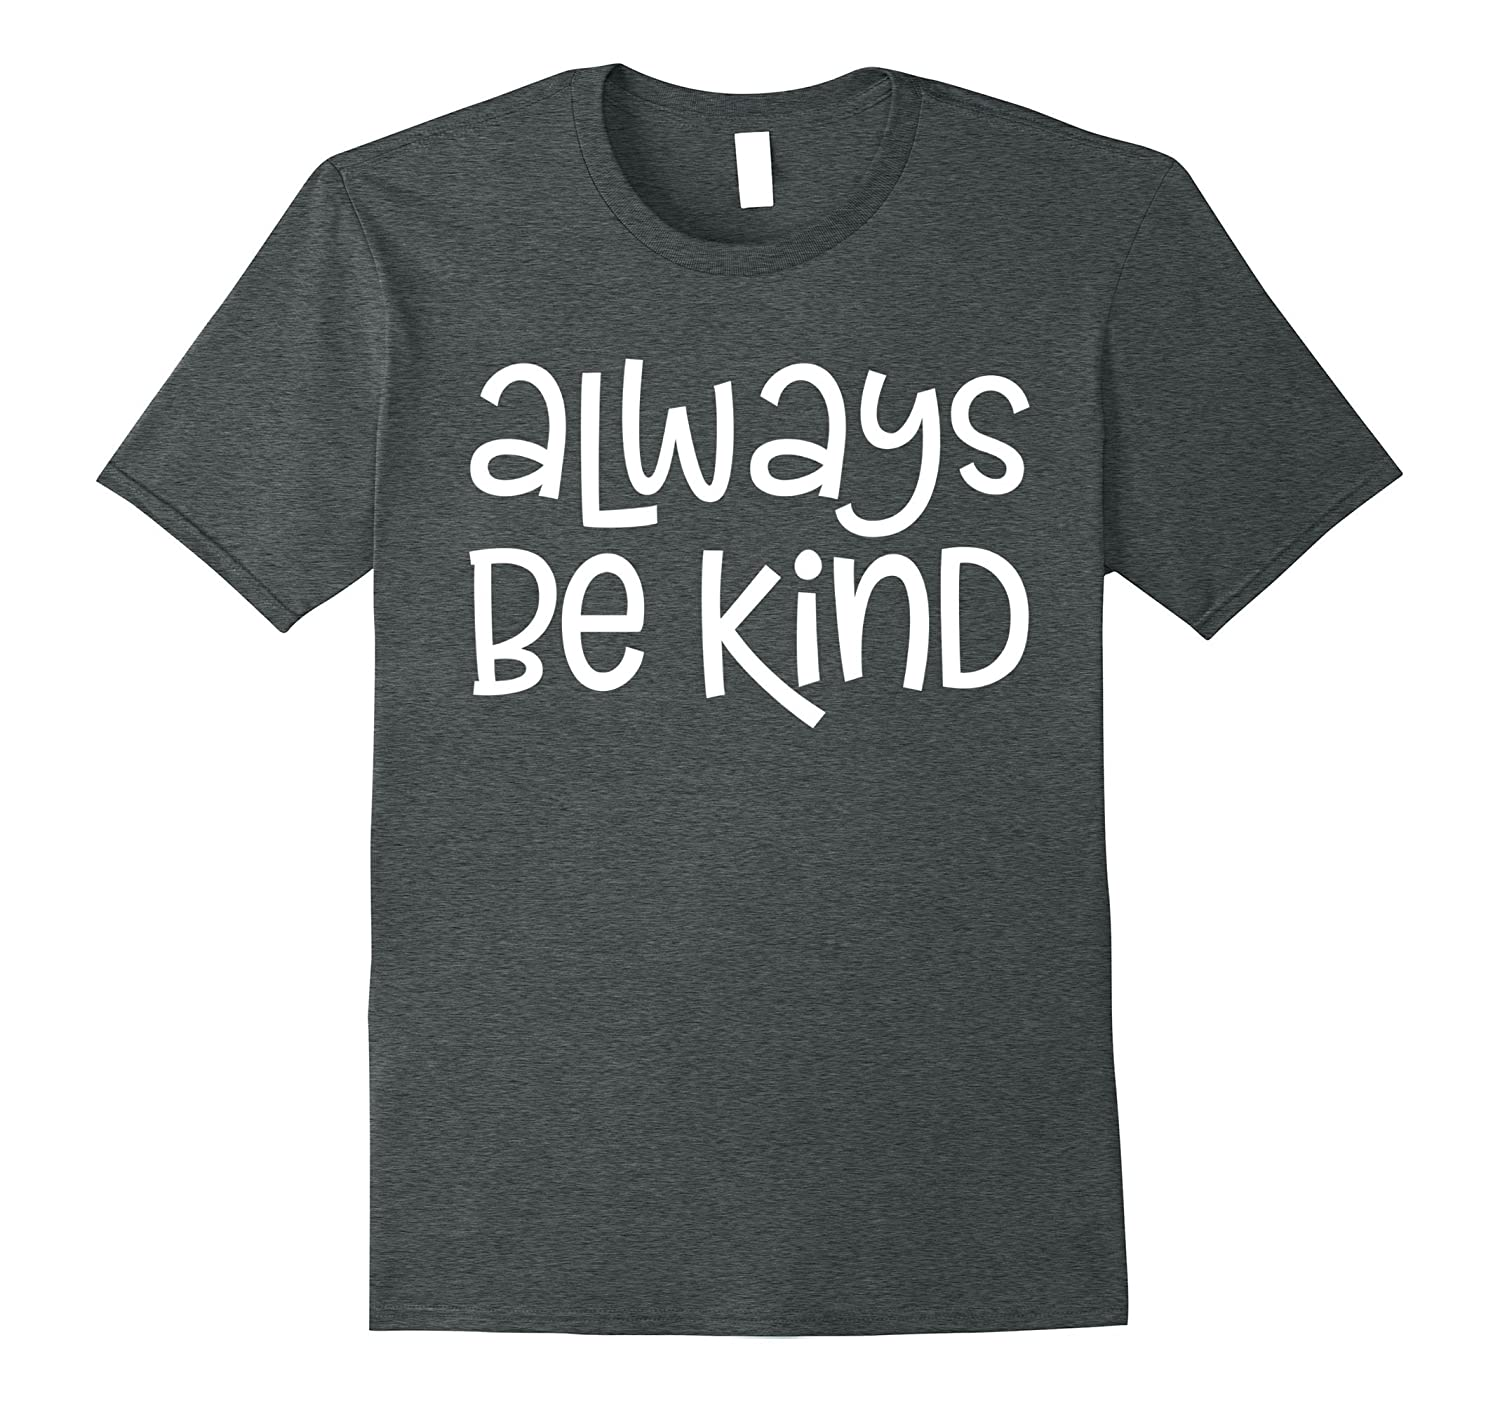 795ce02e Always Be Kind T-Shirt kindness quote tee inspirational gift-RT ...